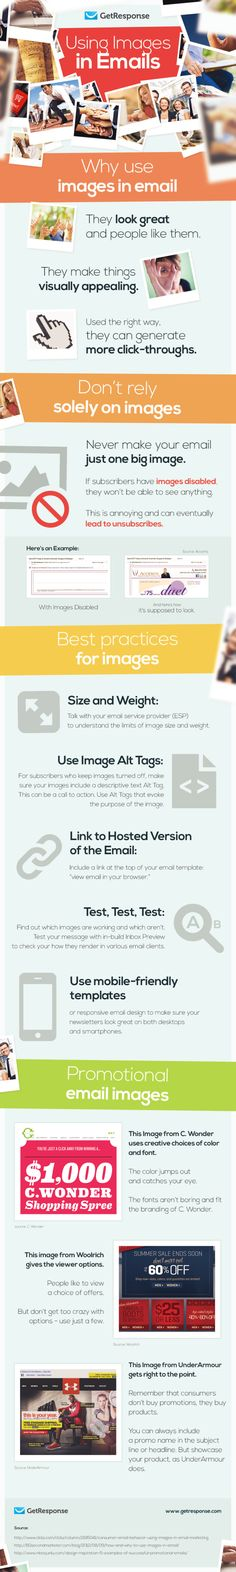 Email Marketing Tip: A wonderful infographic from Get Response about using graphic images in your email. Email Marketing Lists, Email Marketing Campaign, Marketing Articles, Marketing Software, Marketing Digital, Internet Marketing, Online Marketing, Media Marketing, Marketing Technology